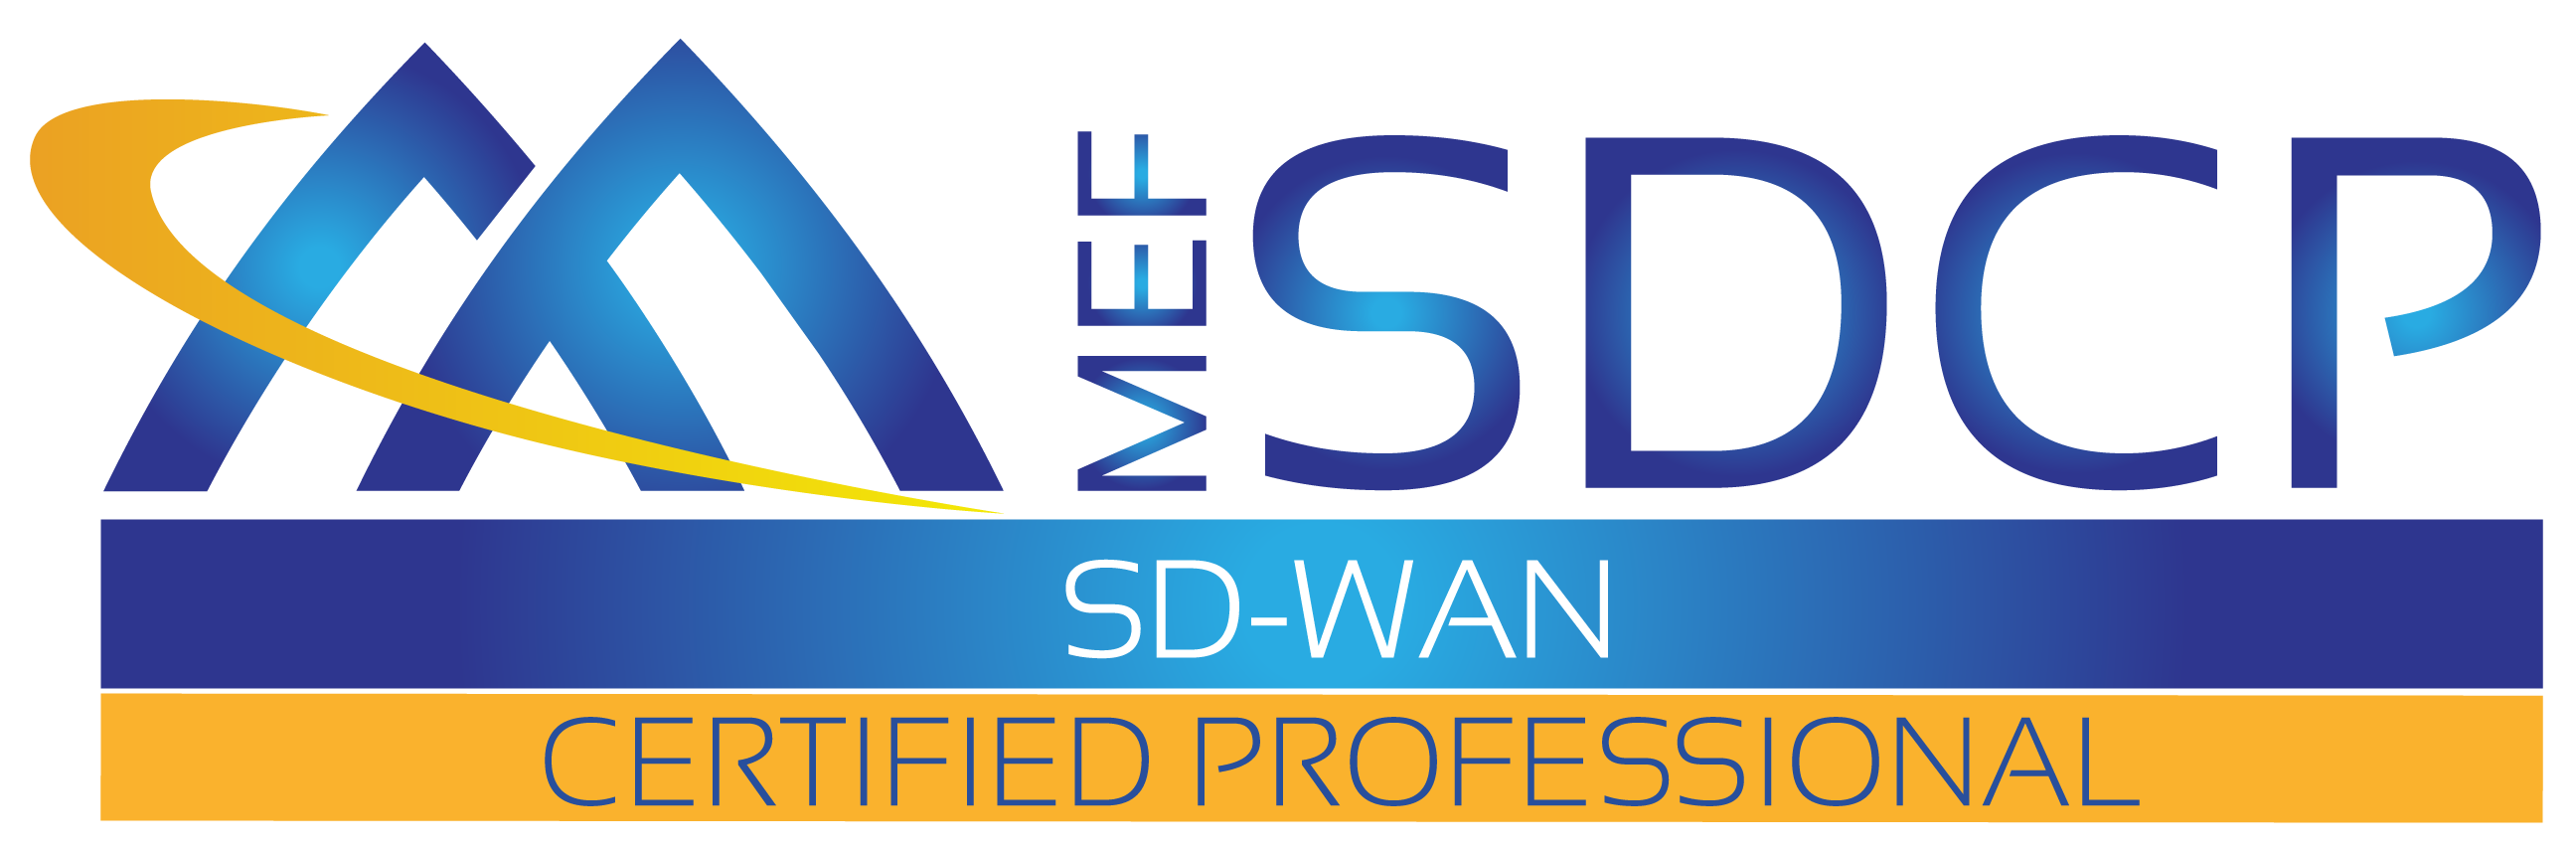 MEF-SDCP SD-WAN Certified Professional